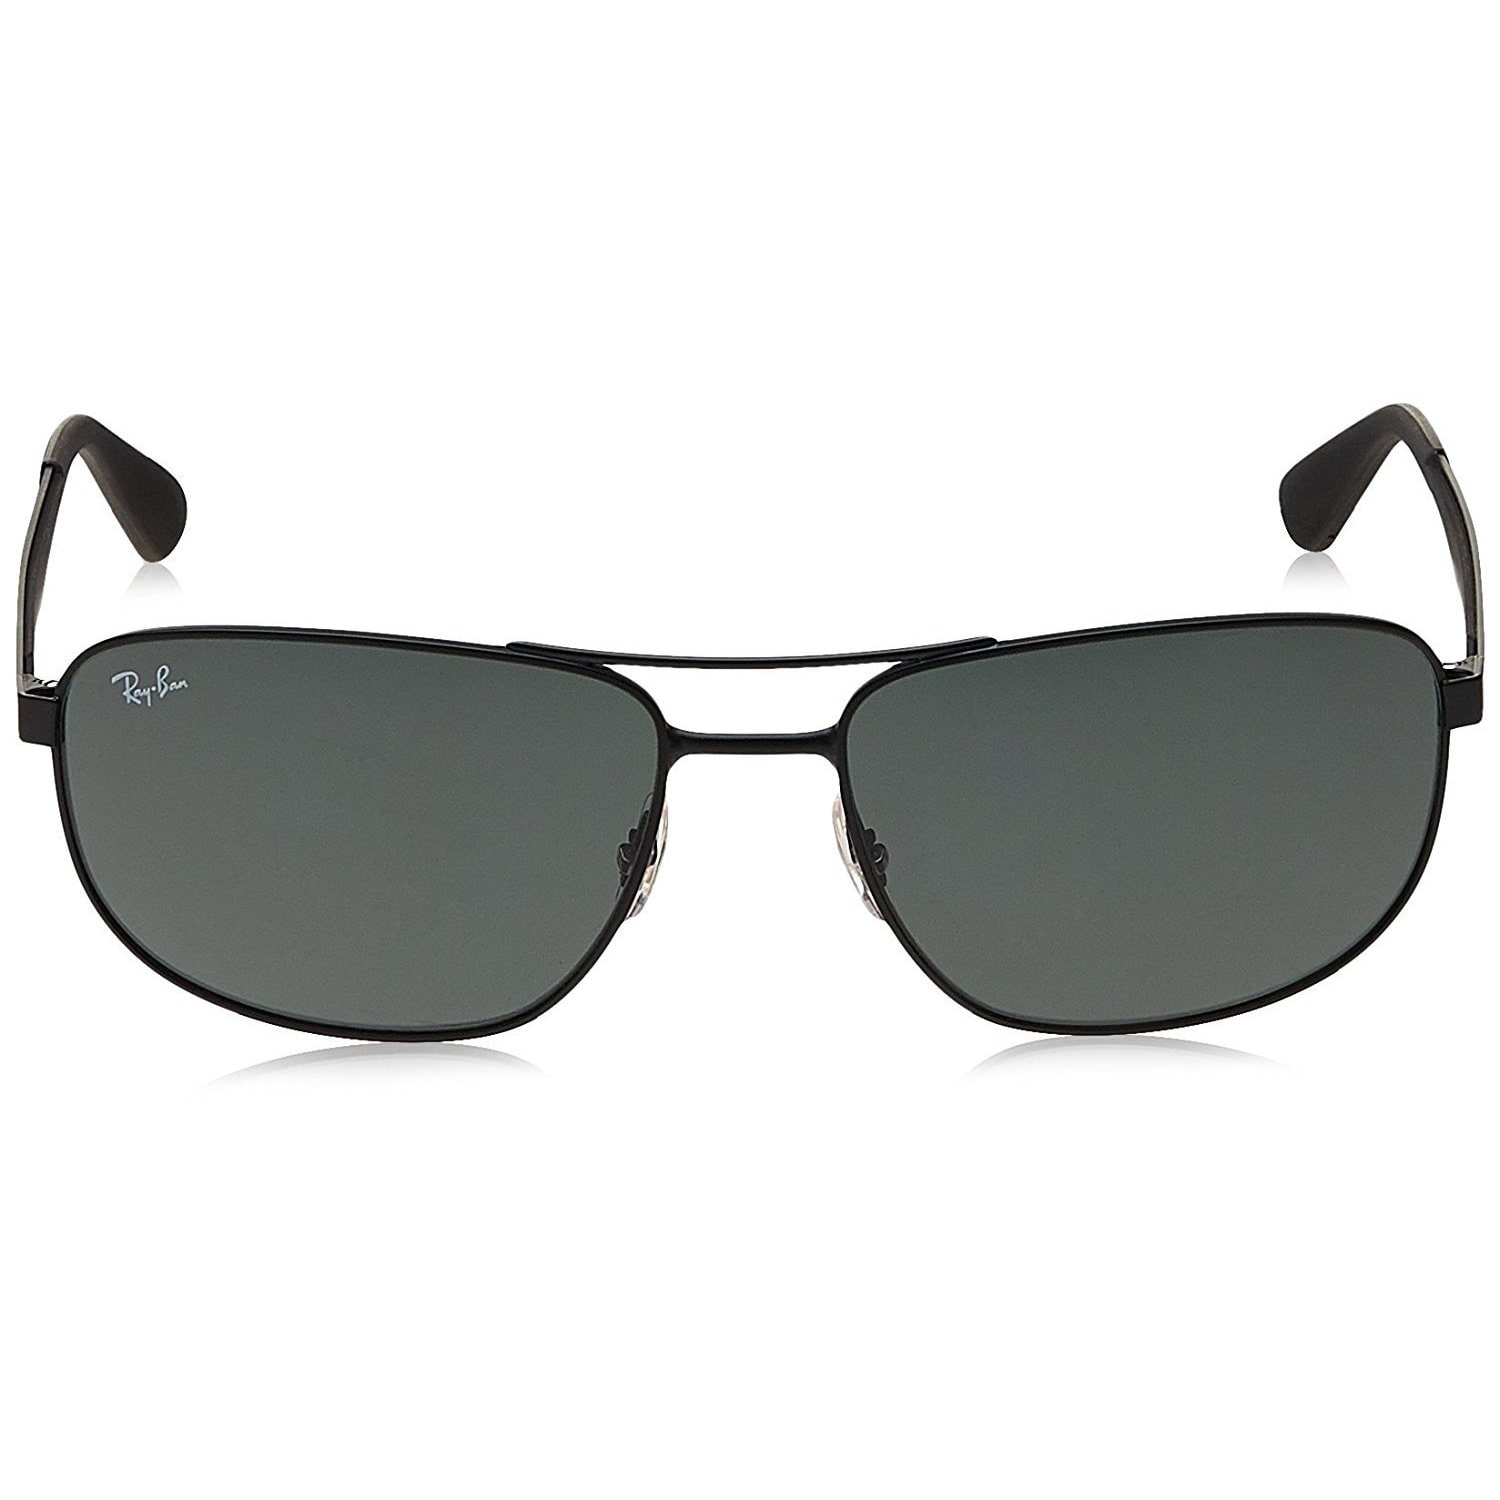 f9ceabccce Shop Ray-Ban RB3528 006 71 Black Frame Green Classic 61mm Lens Sunglasses -  Free Shipping Today - Overstock - 14431344